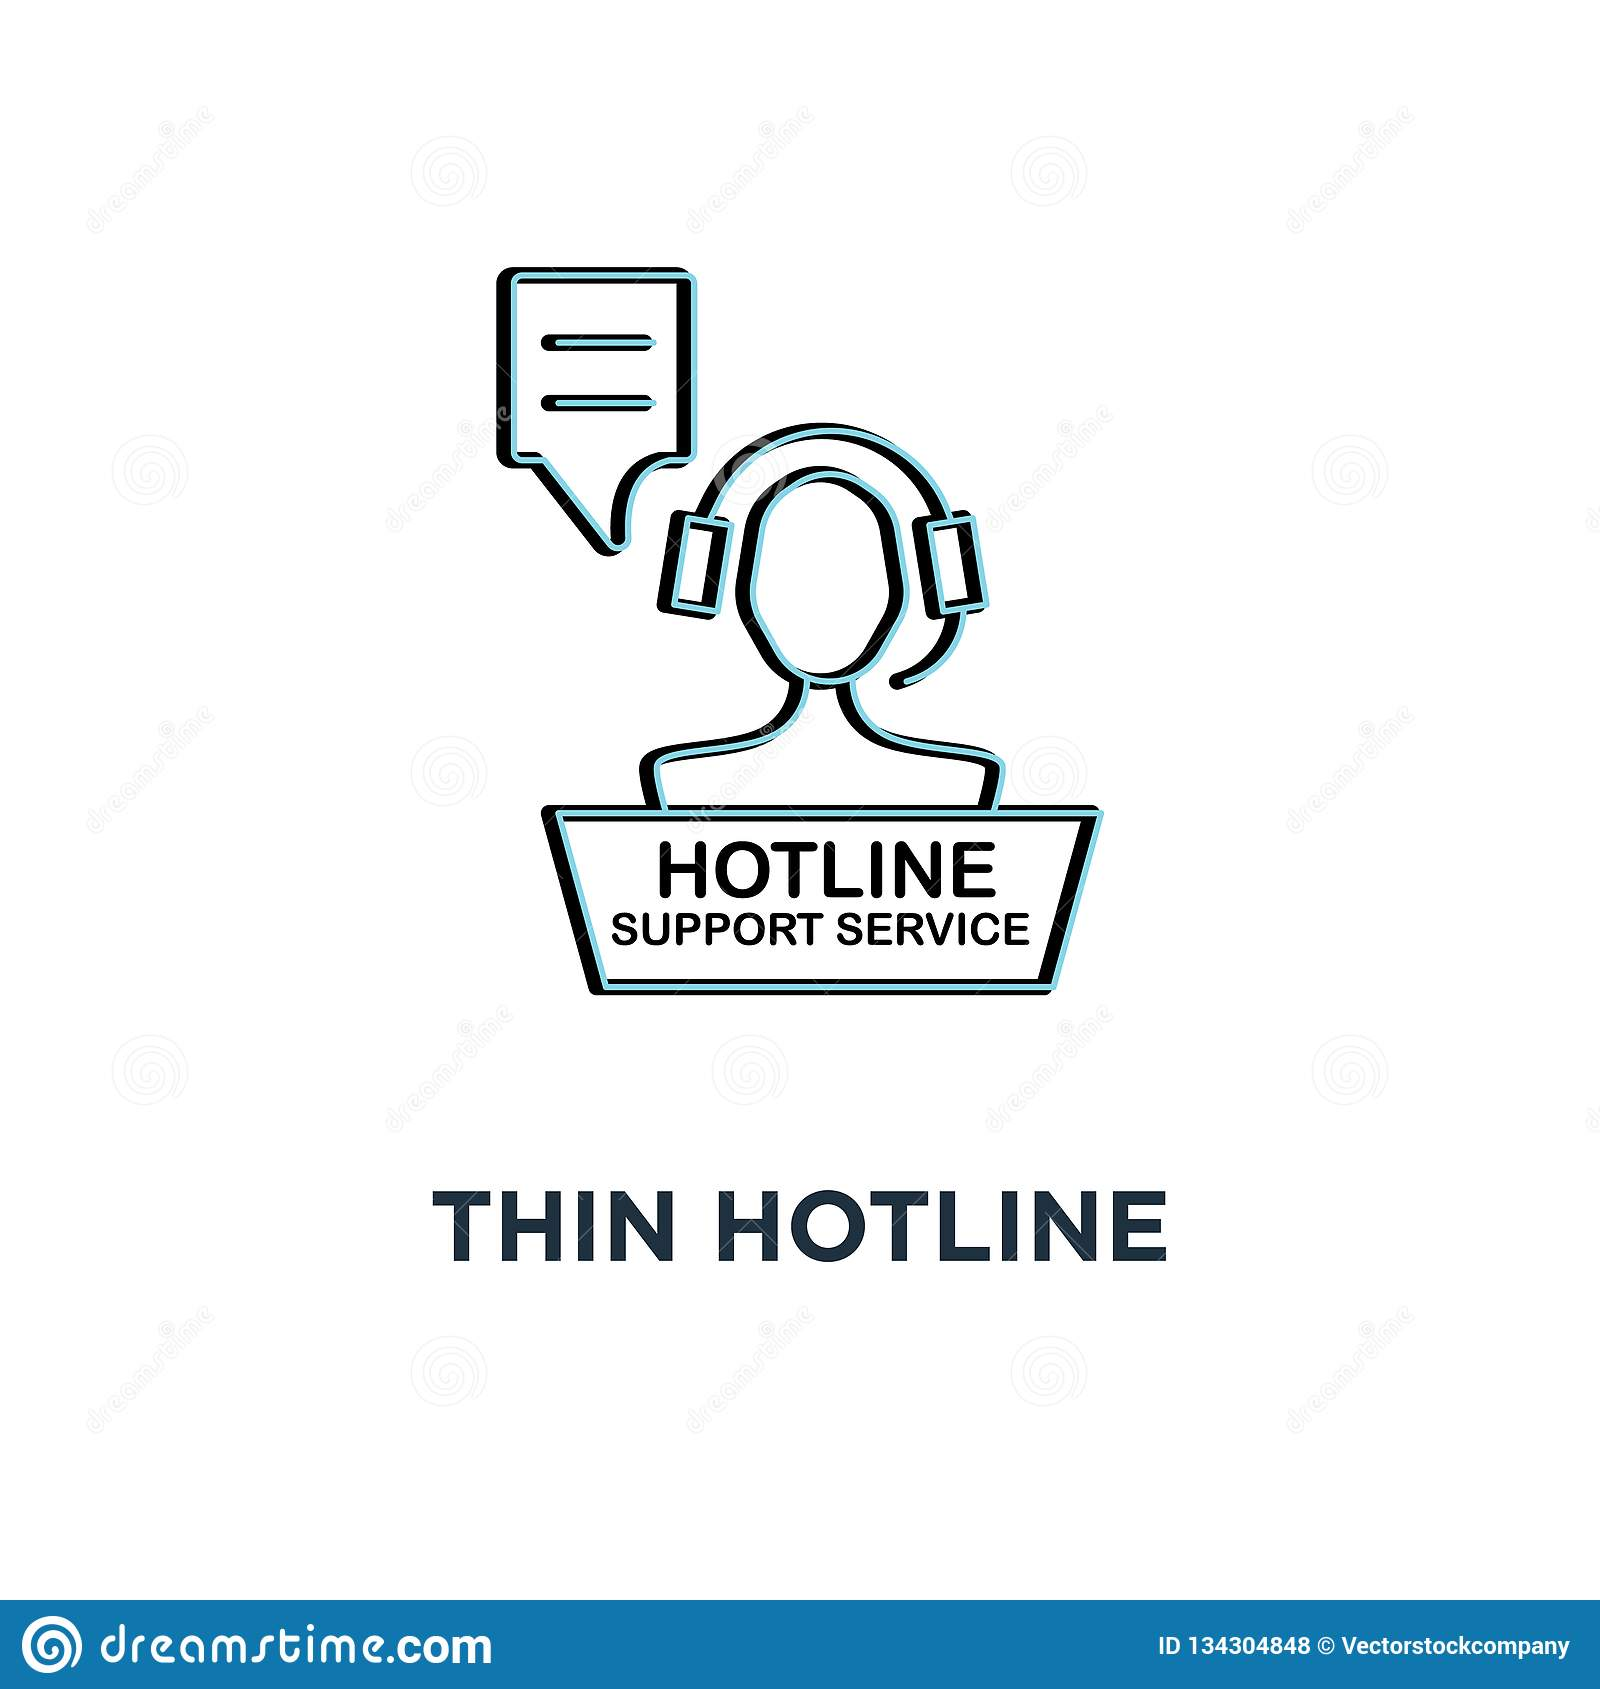 red thin hotline support service icon, symbol 24/7 help contact for client by adviser or counselor concept simple linear style